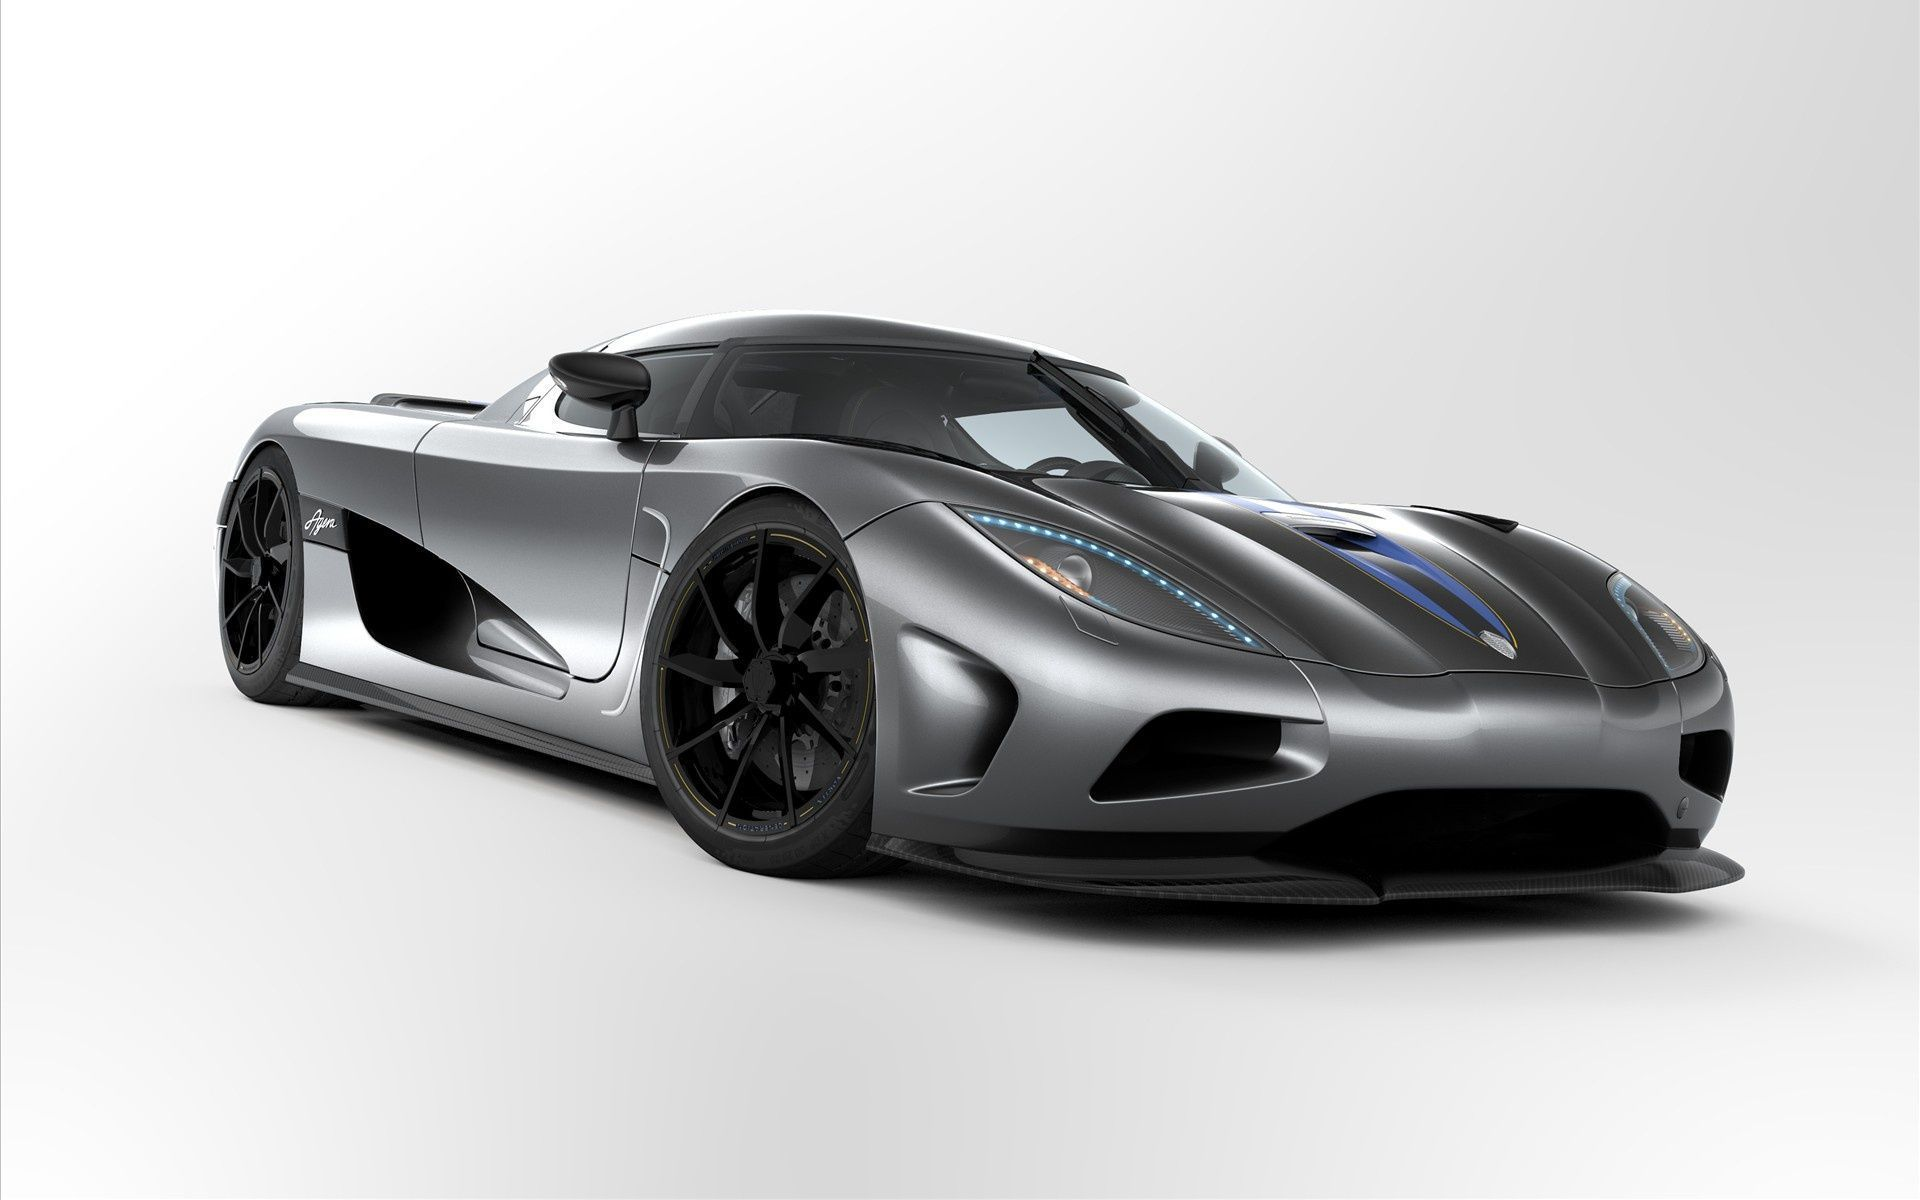 Koenigsegg Agera Hd High Definition Wallpaper Background Hd Wallpapers And Koenigsegg Sports Car Sports Cars Luxury